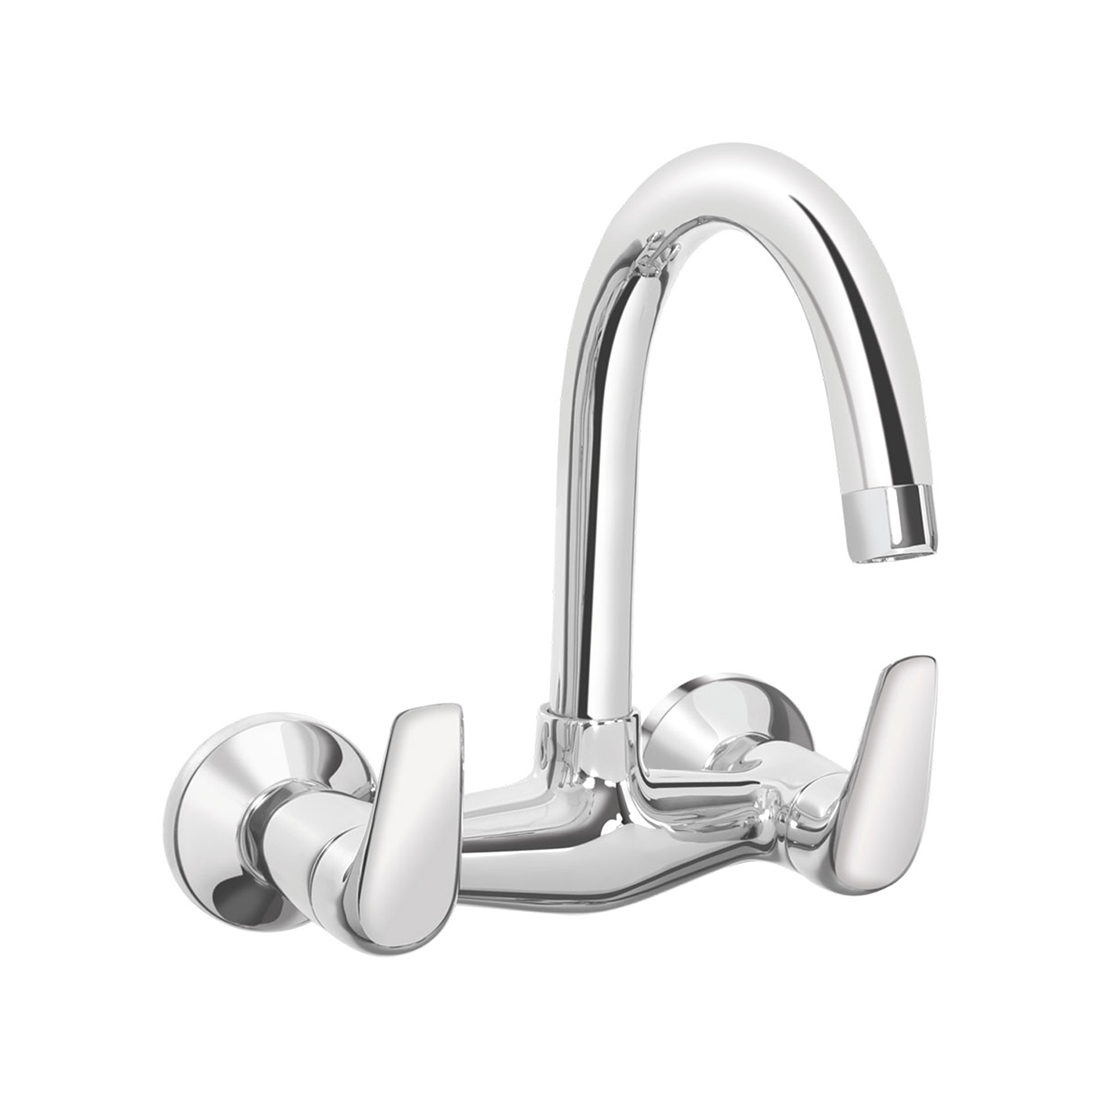 Kerovit Slope KB1311024 Sink Mixer With Swivel Spout and Flange